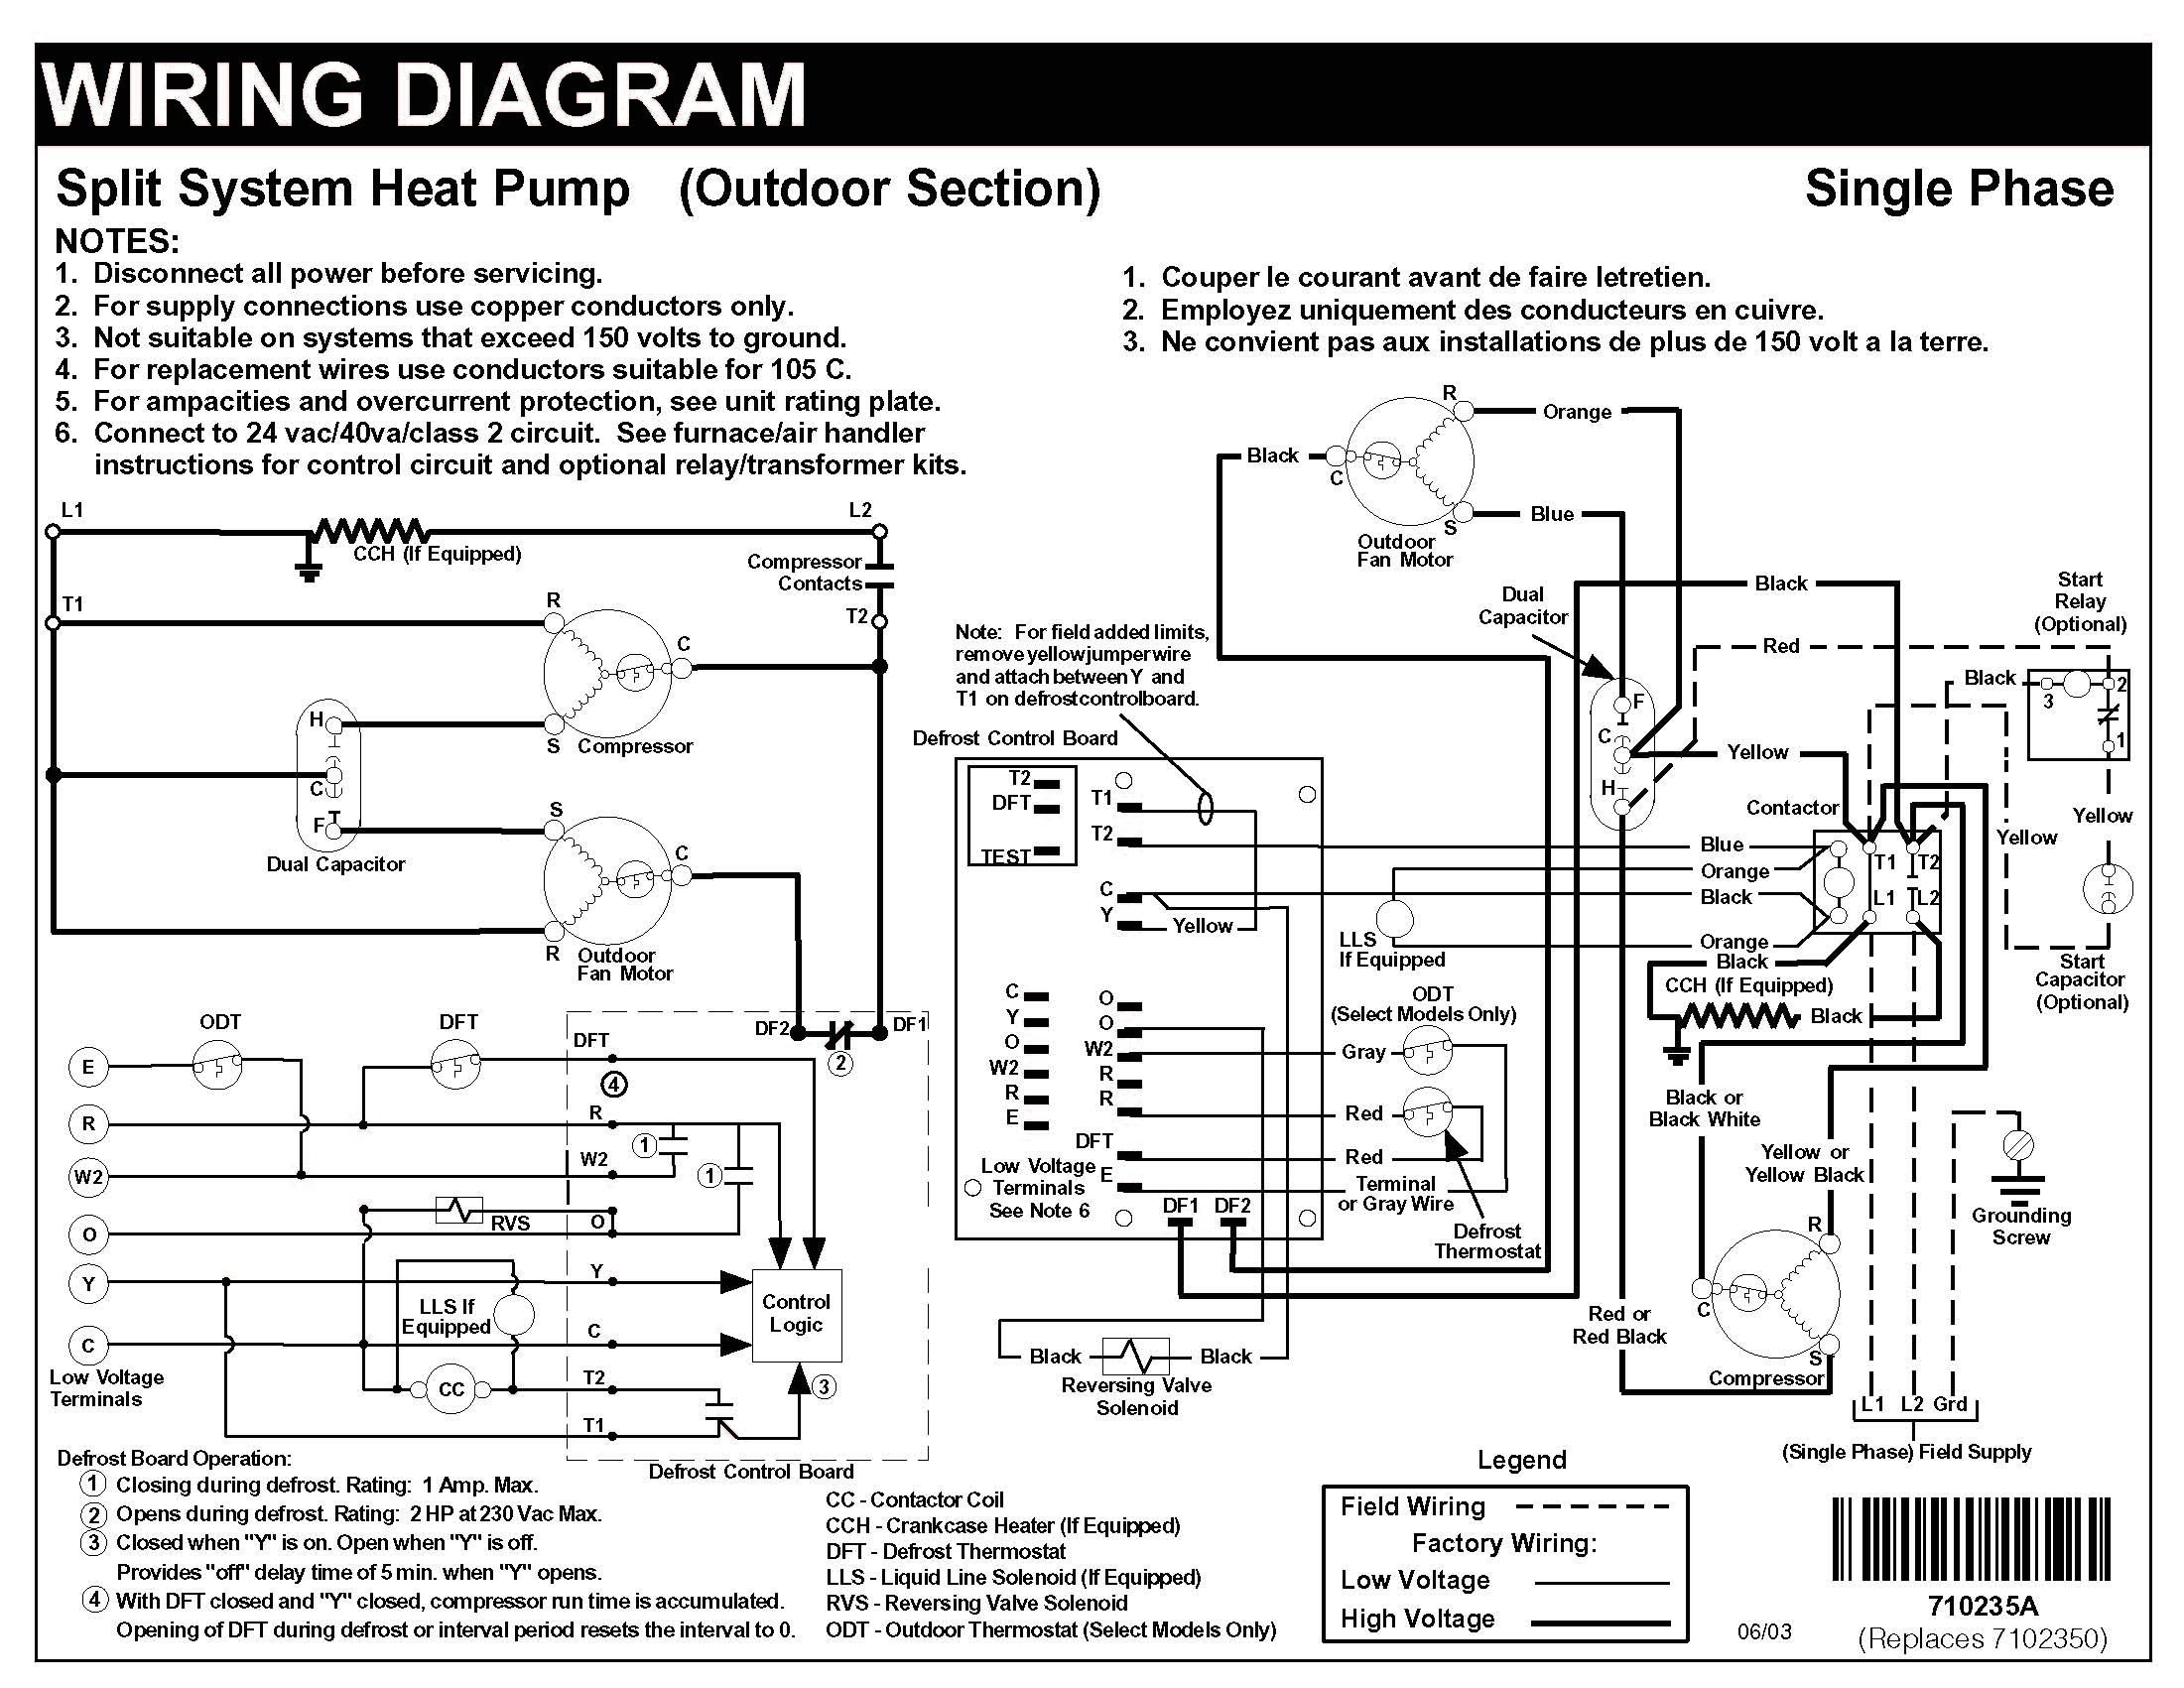 Carrier Heat Pump Wiring Schematic - Wiring Diagrams Hubs - Carrier Wiring Diagram